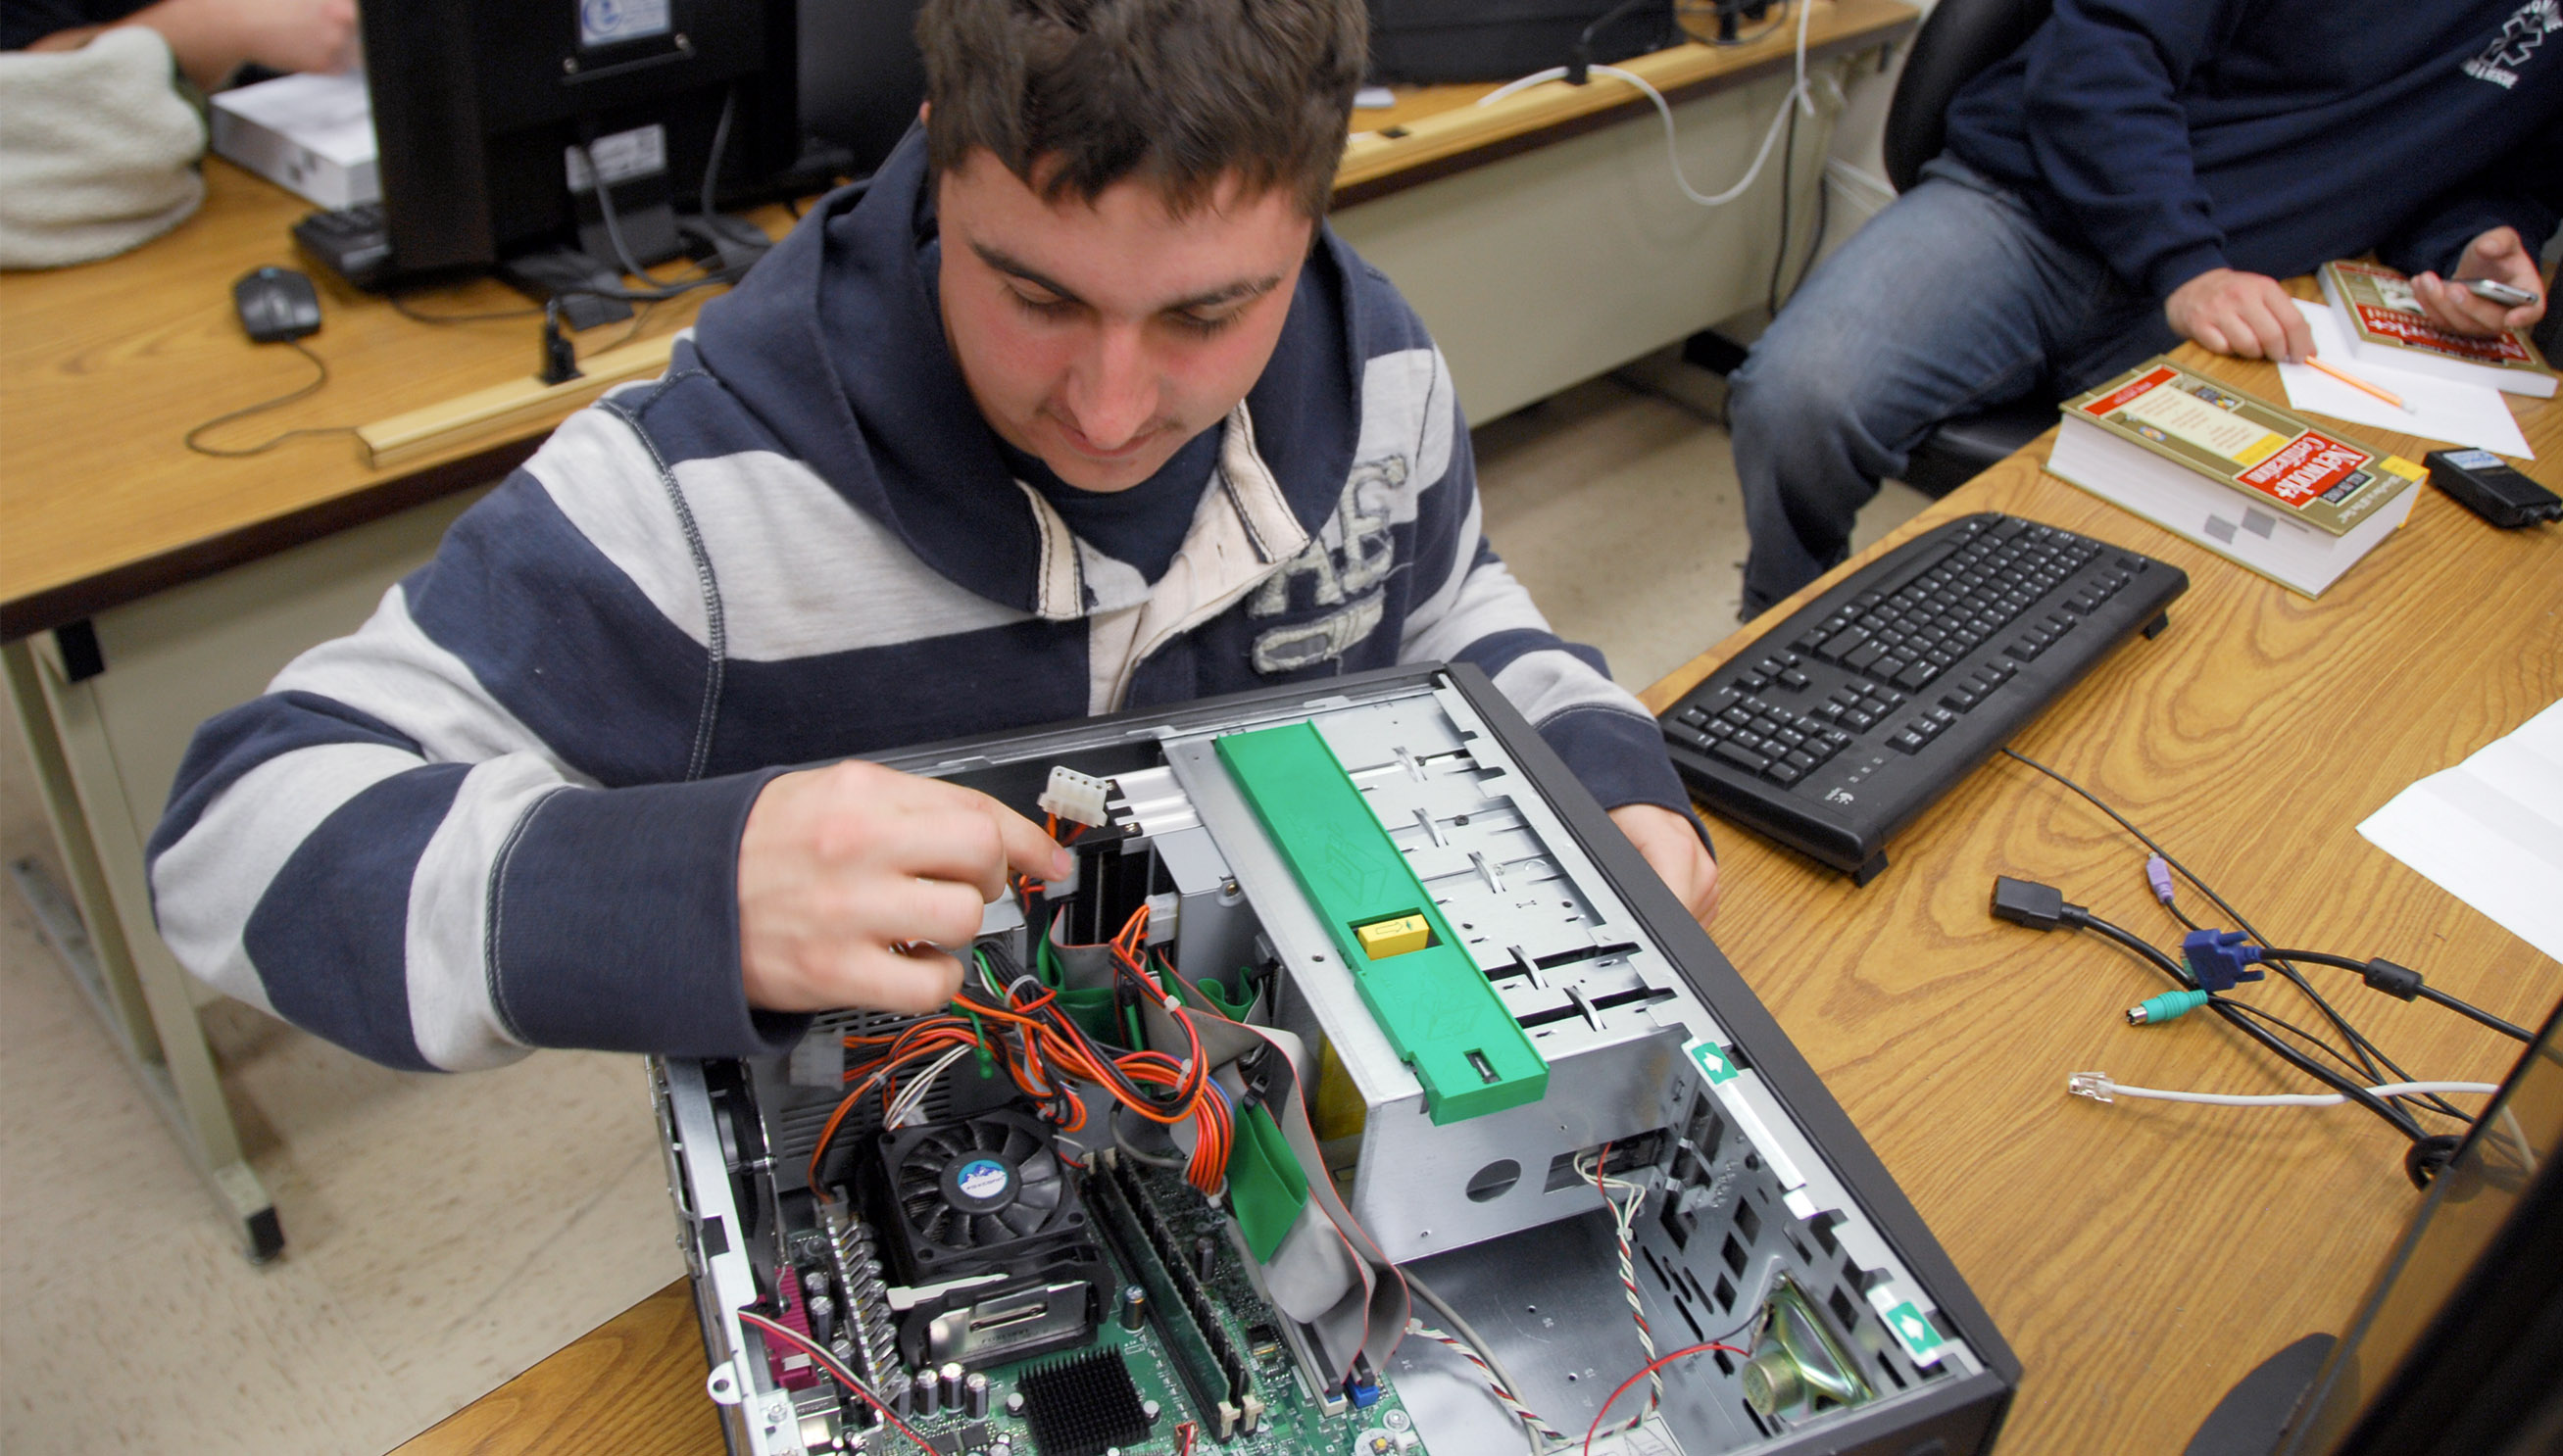 Electronics and Computer Technology Program - Hohokus, NJ